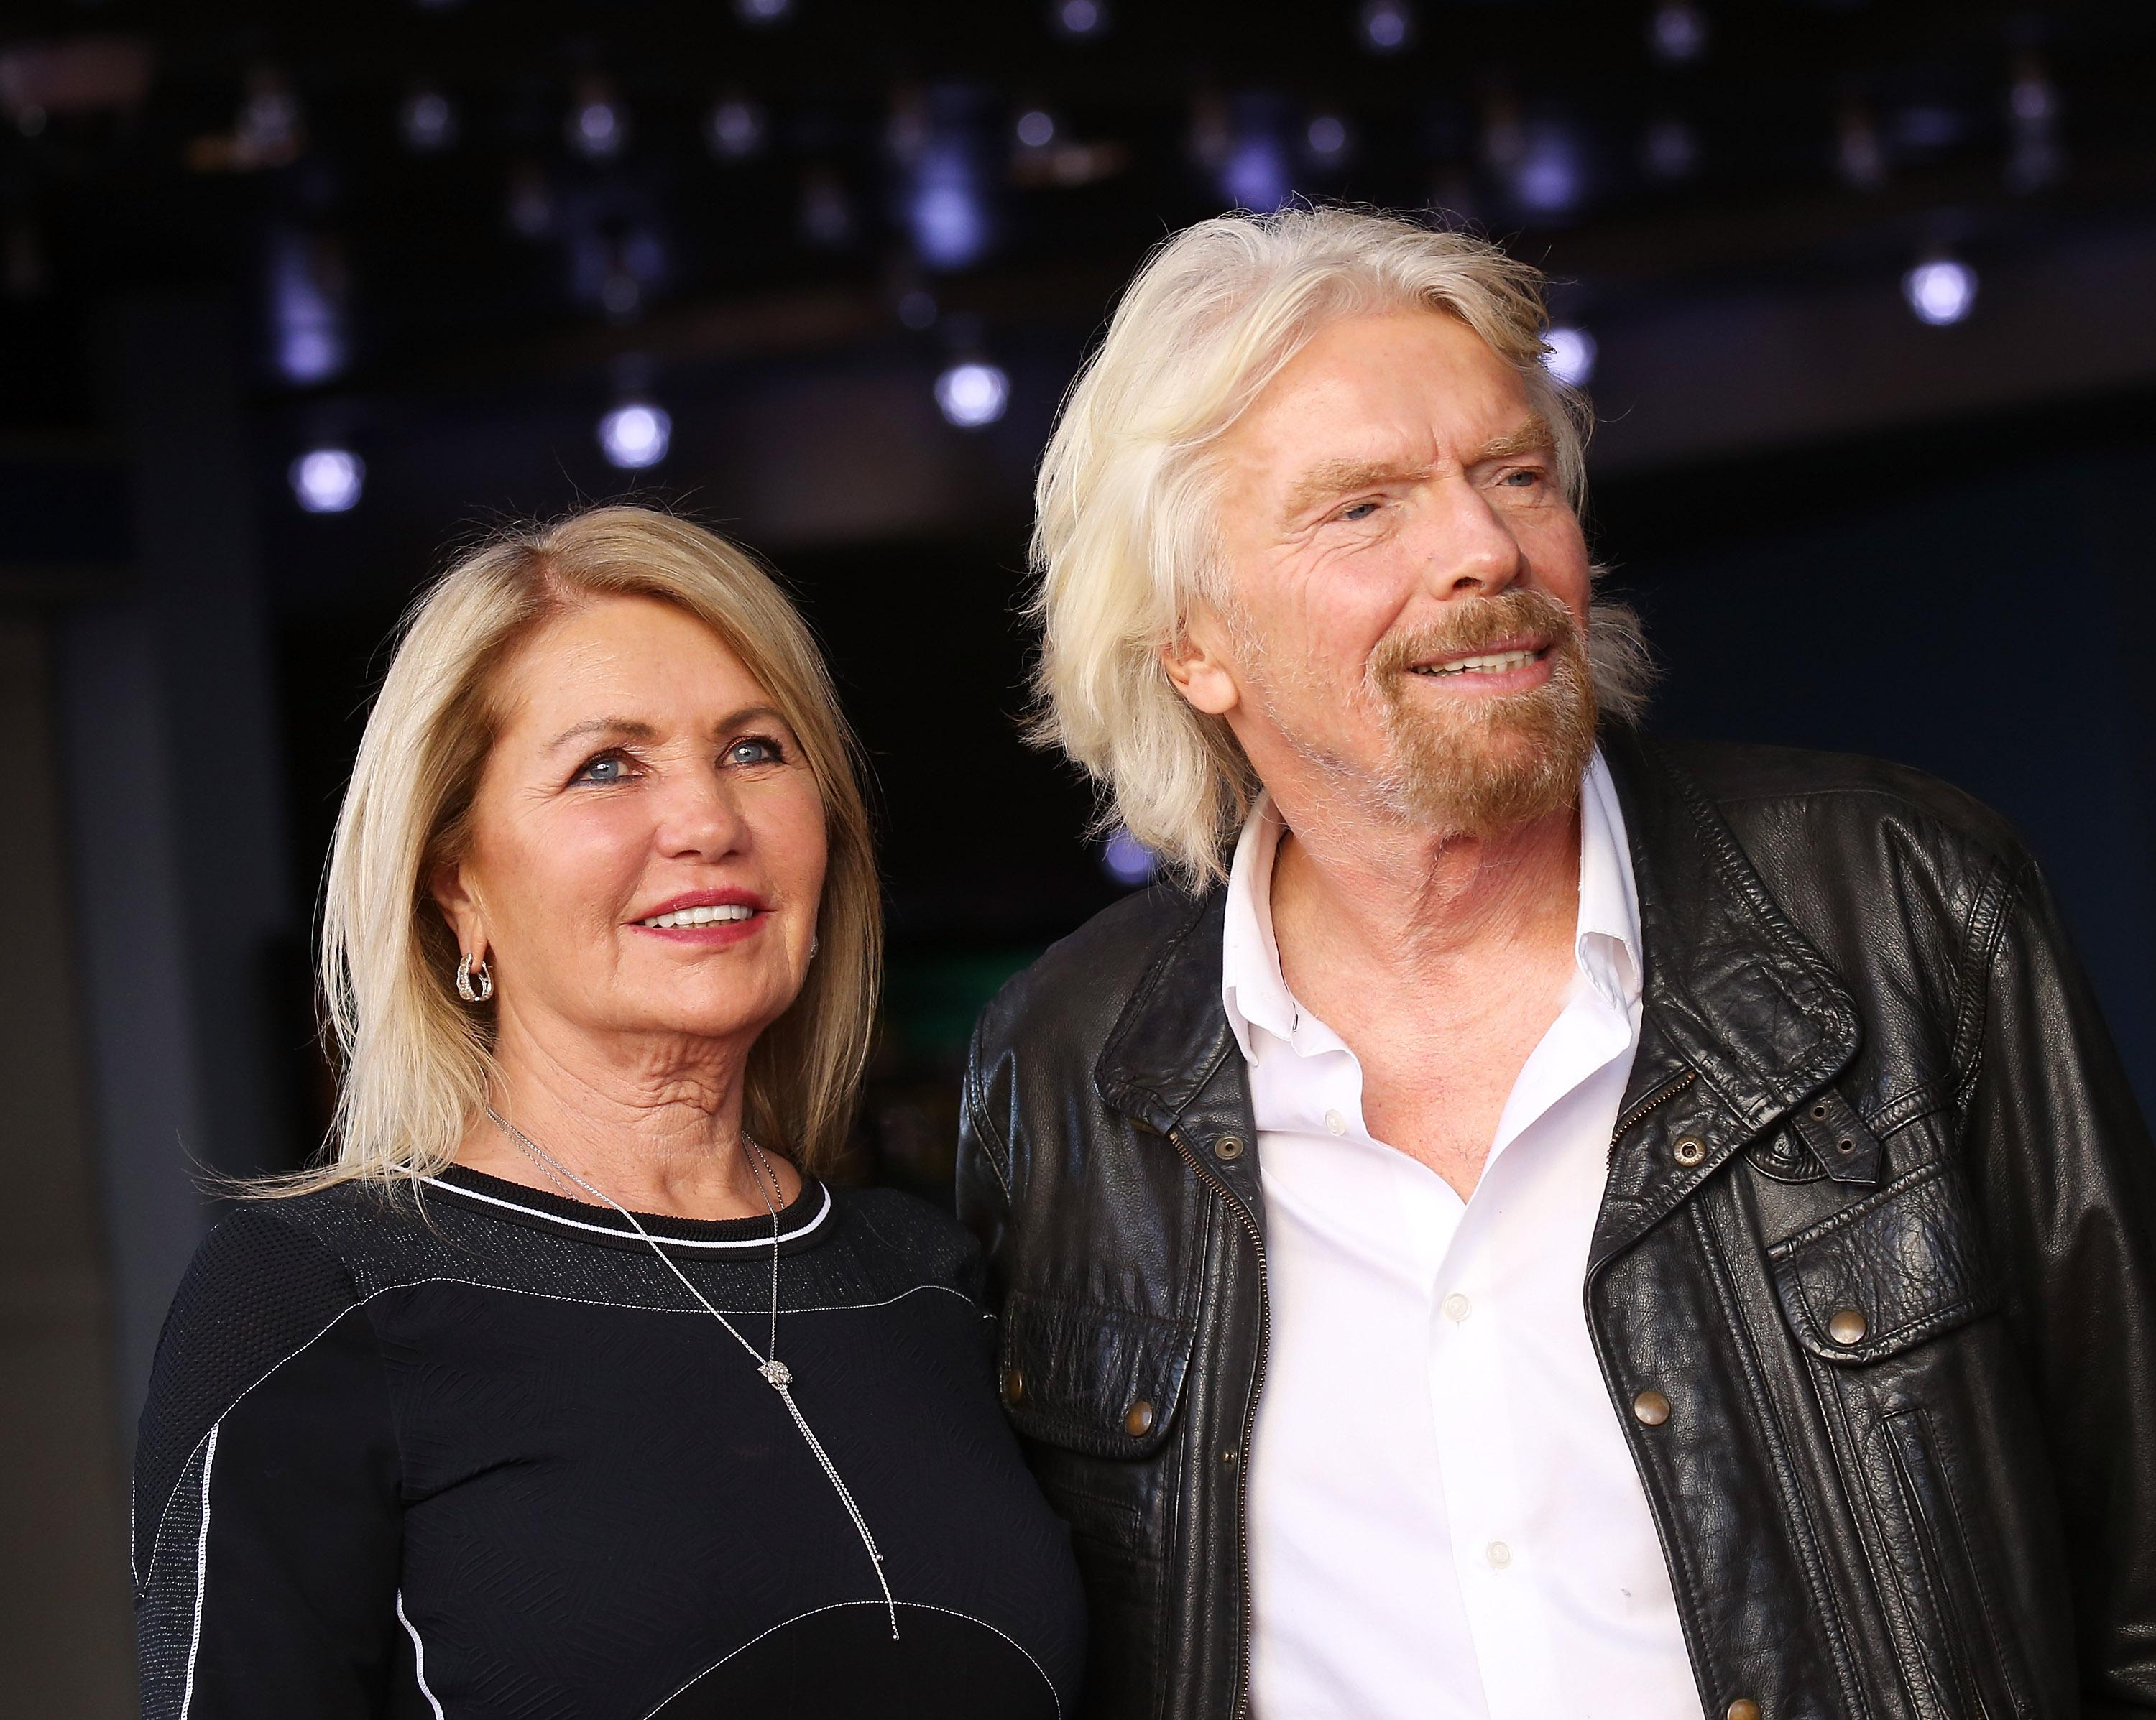 Joan Templeman and Sir Richard Branson